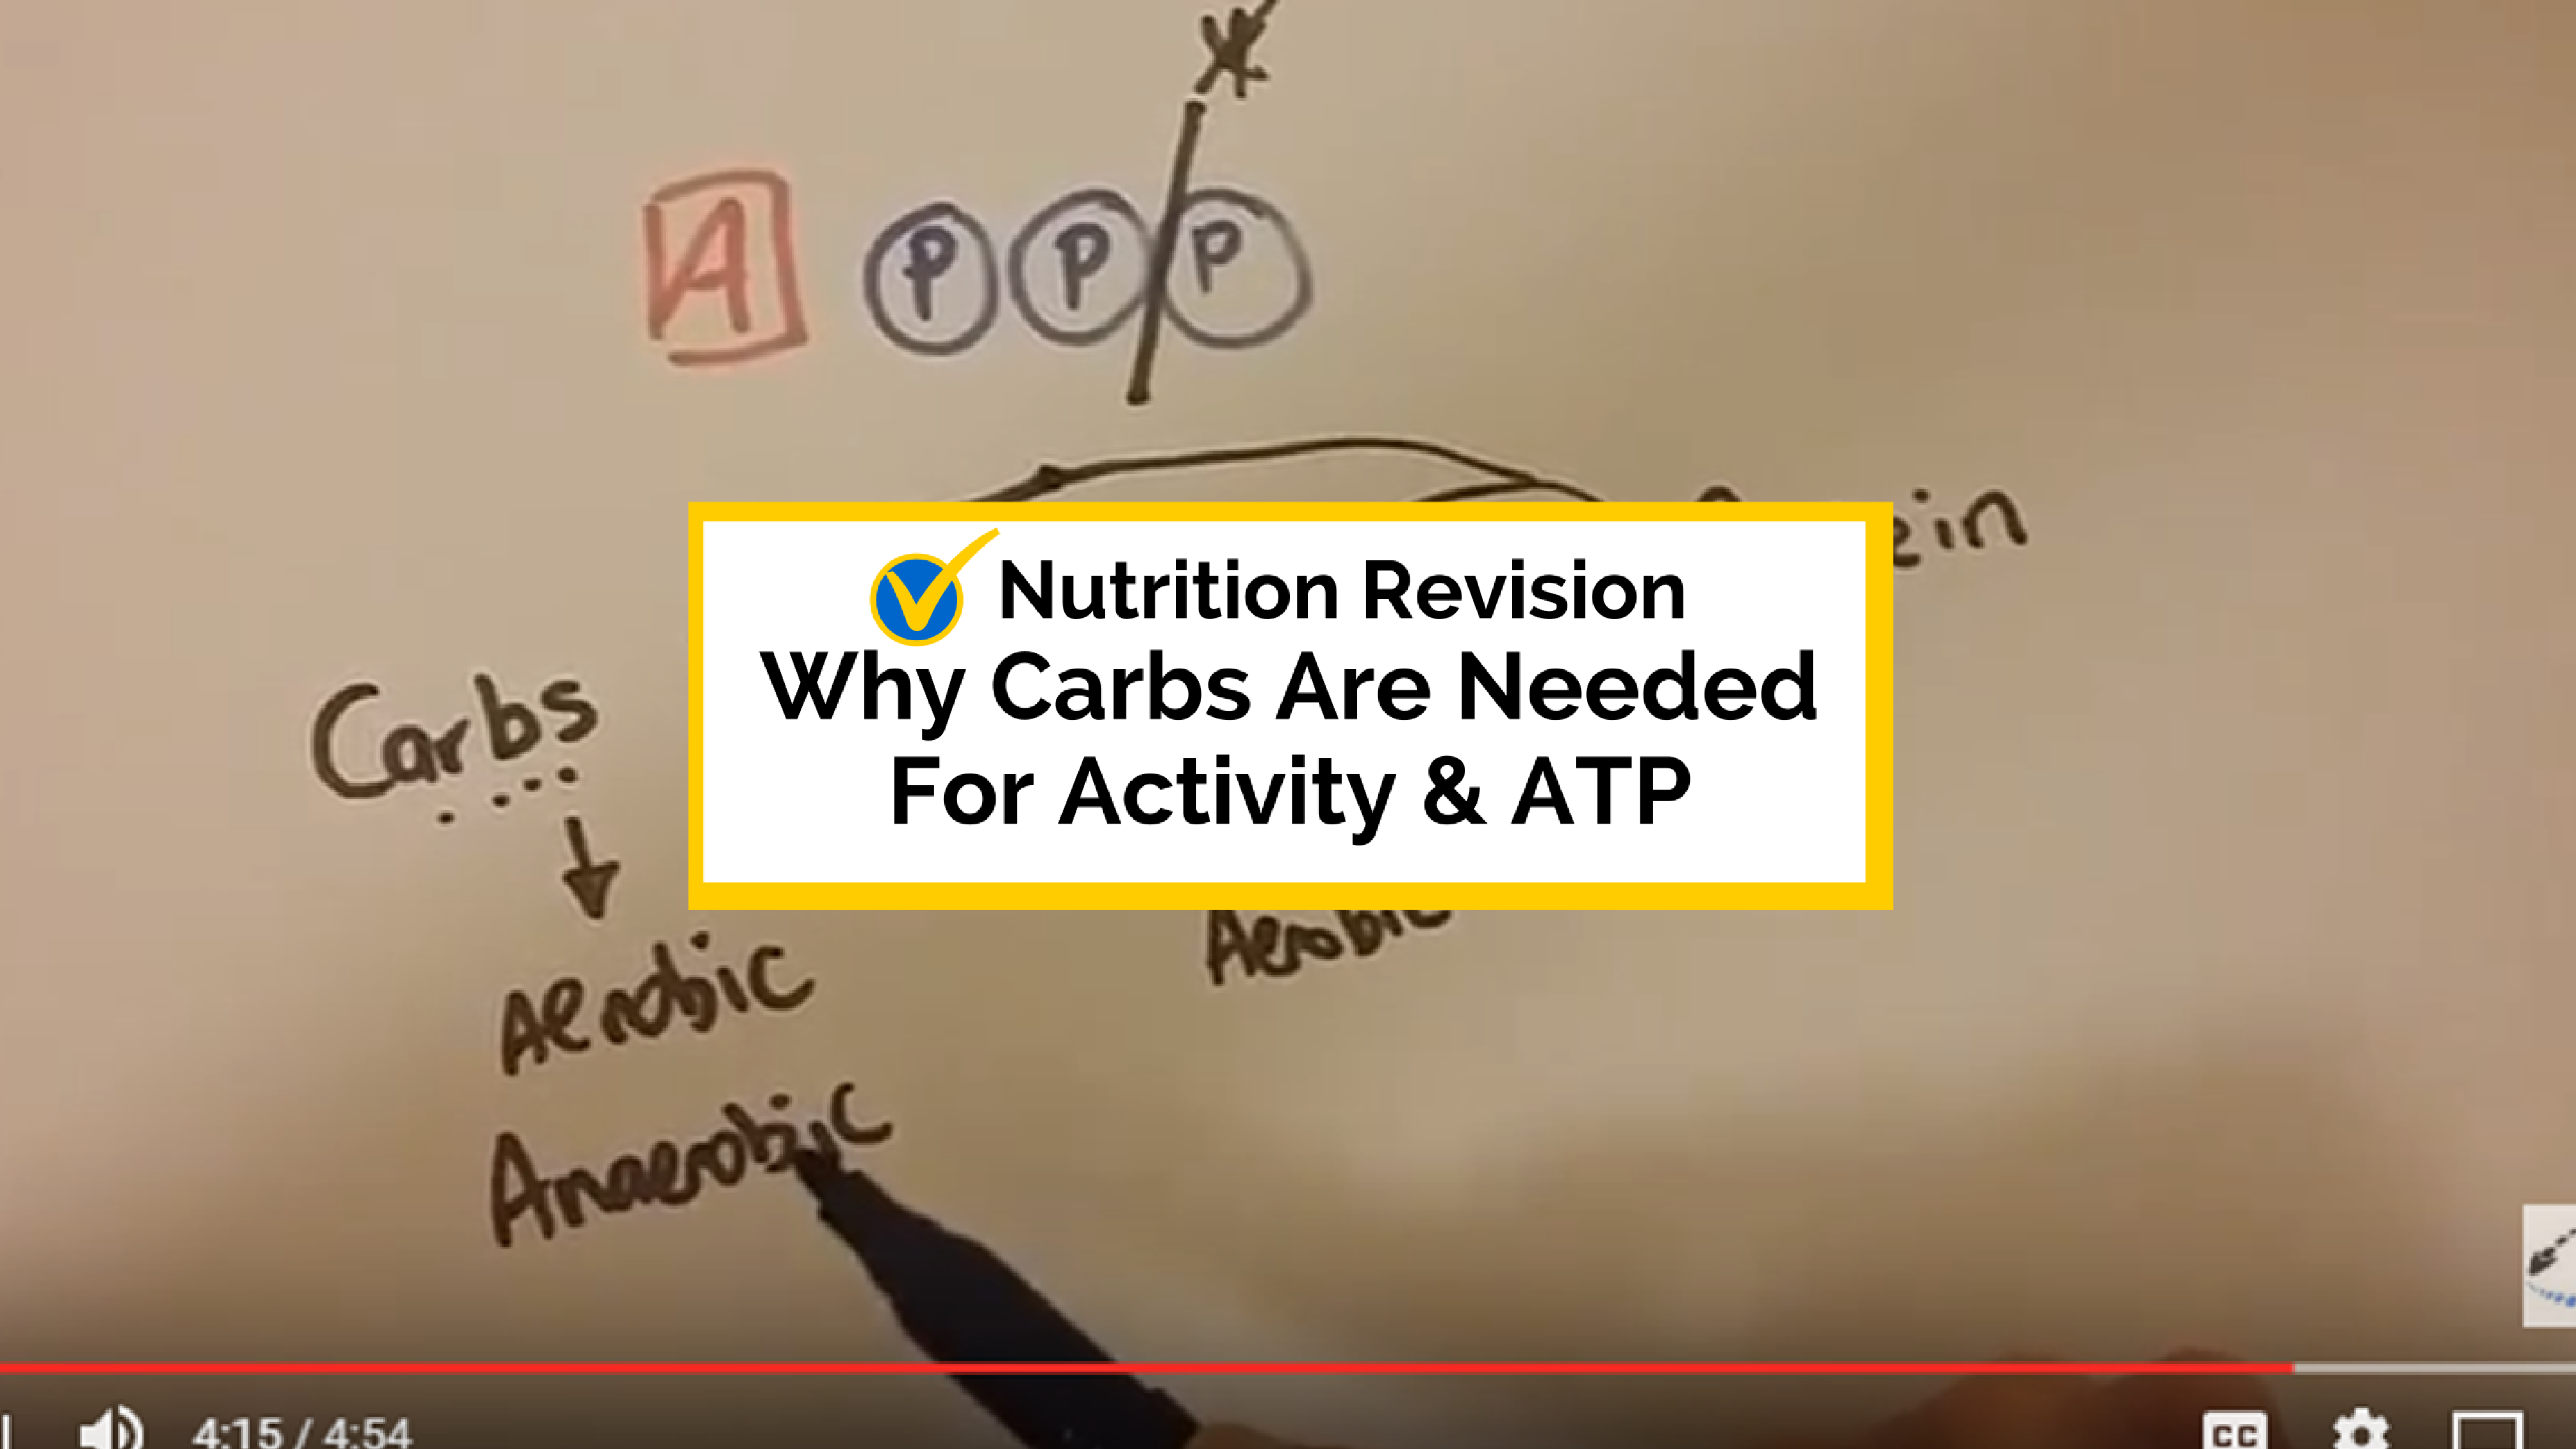 Nutrition Revision: Why Carbs are needed for Activity and ATP